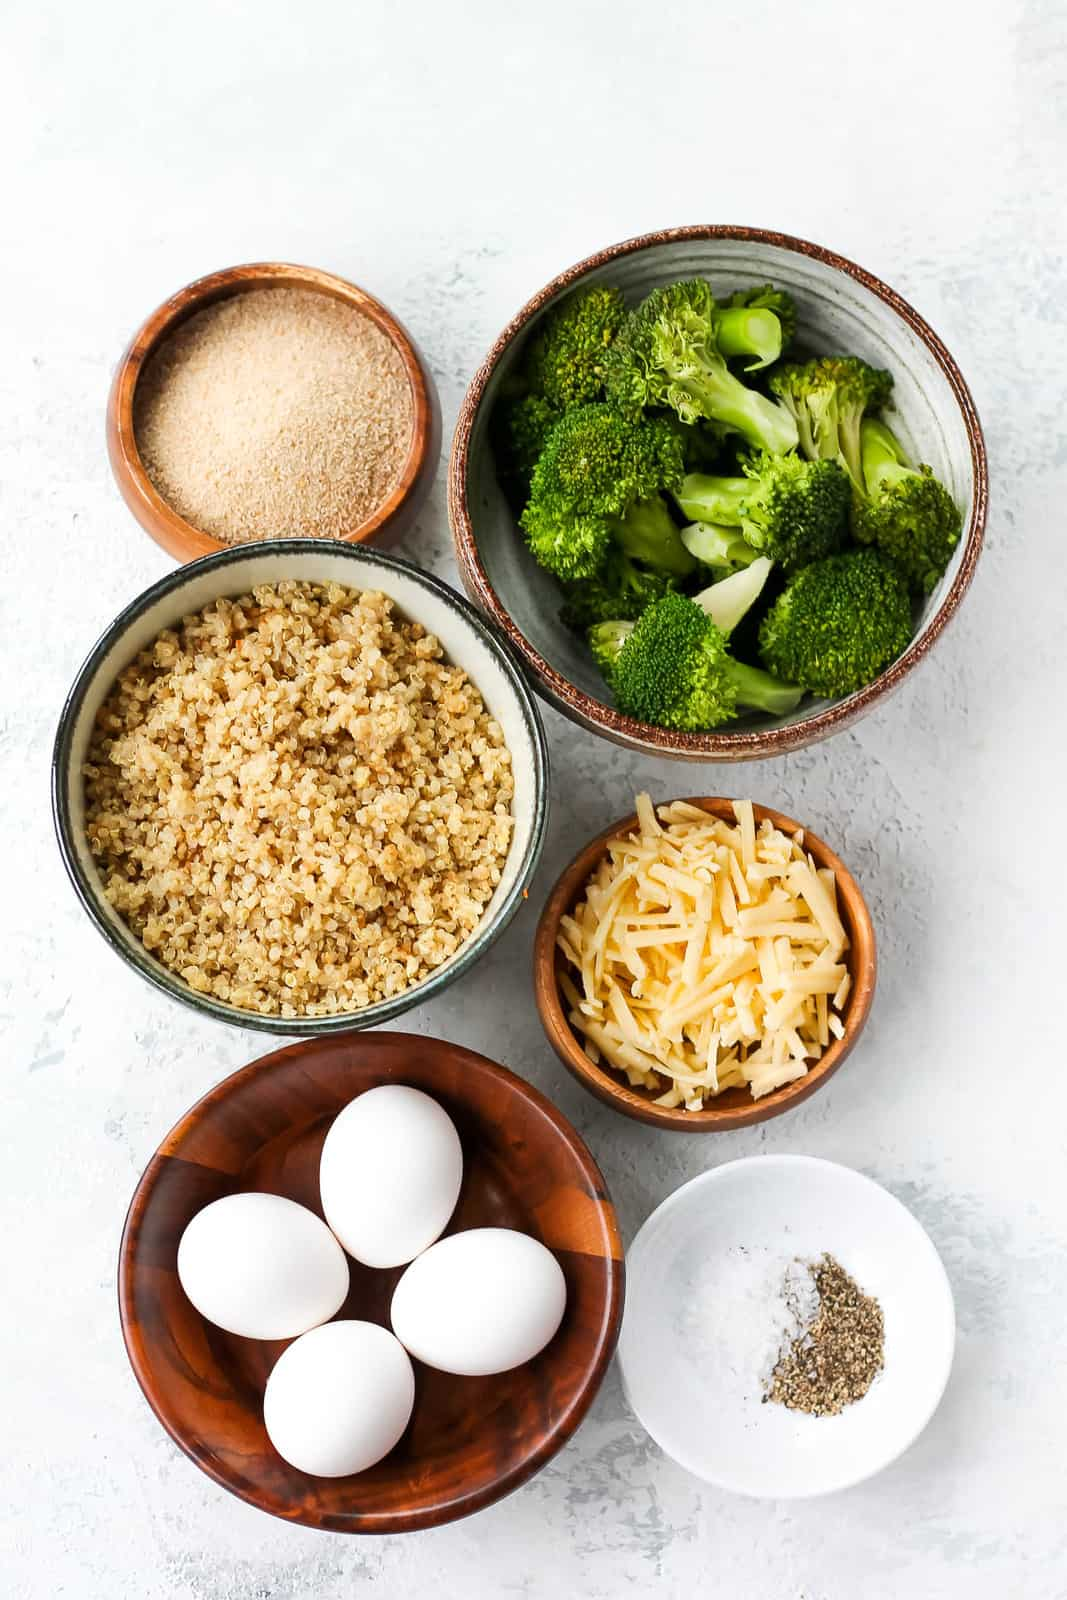 broccoli, quinoa, breadcrumbs, eggs, cheese, salt, and pepper on a grey background